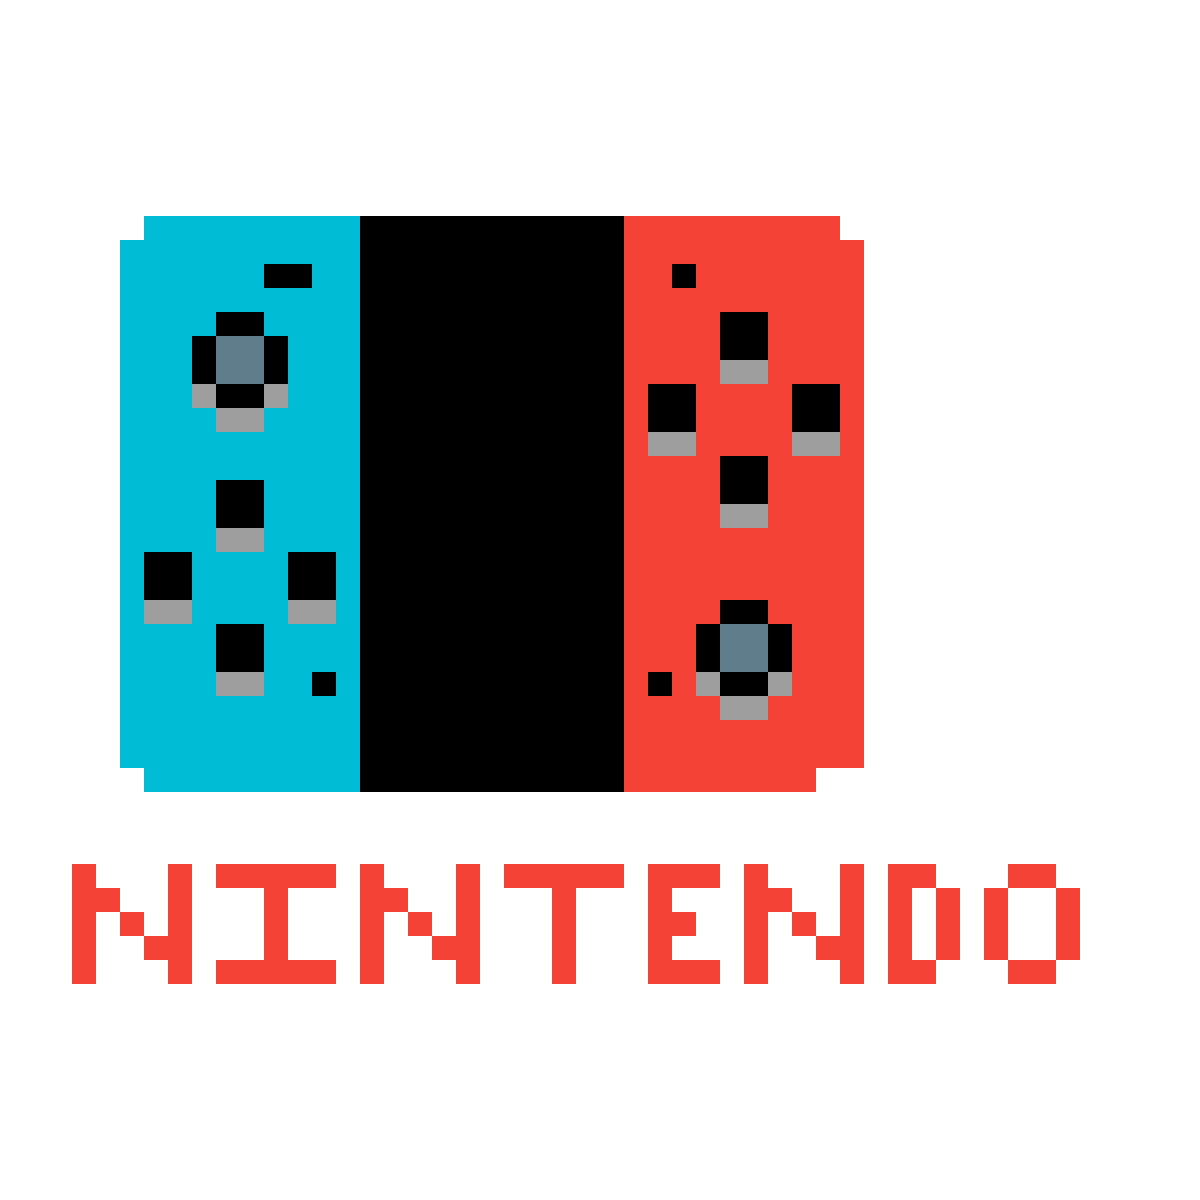 Nintendo Controller by 28stabwounds